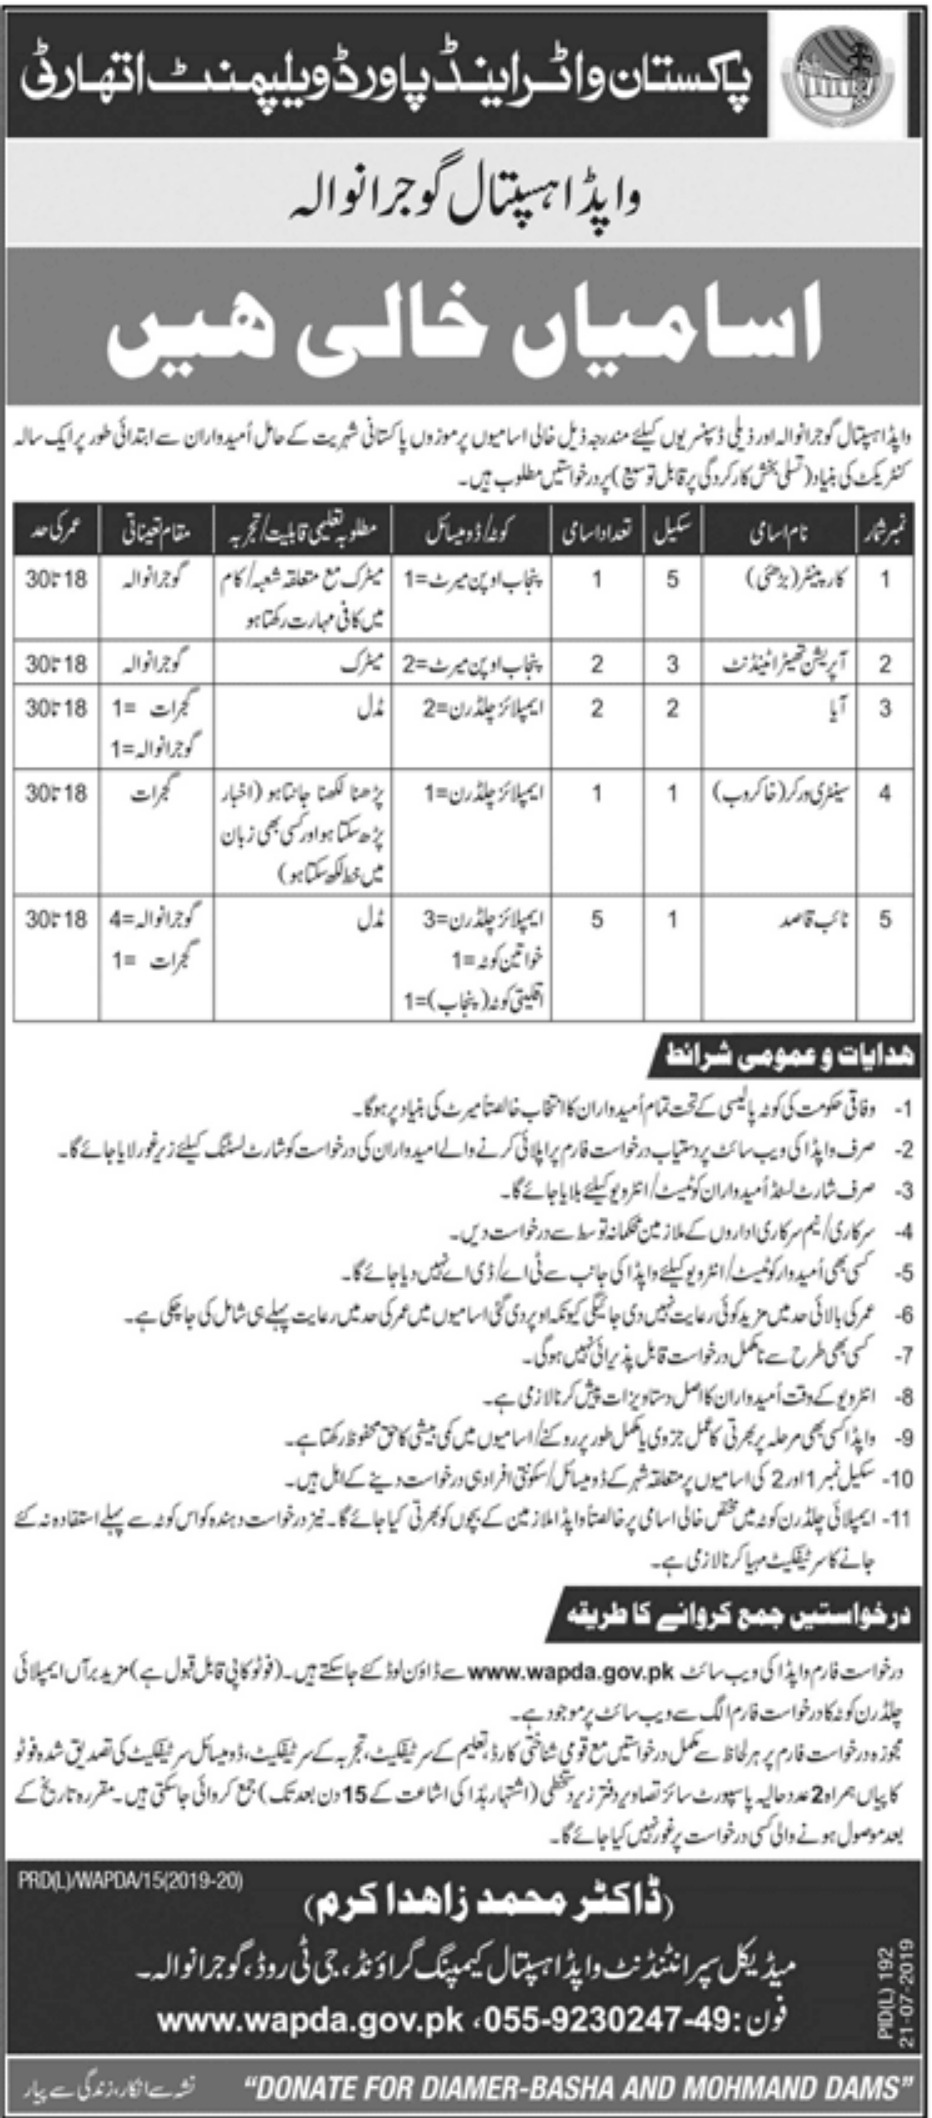 Pakistan Water & Power Development Authority WAPDA Jobs 2019 Wapda Hospital Gujranwala